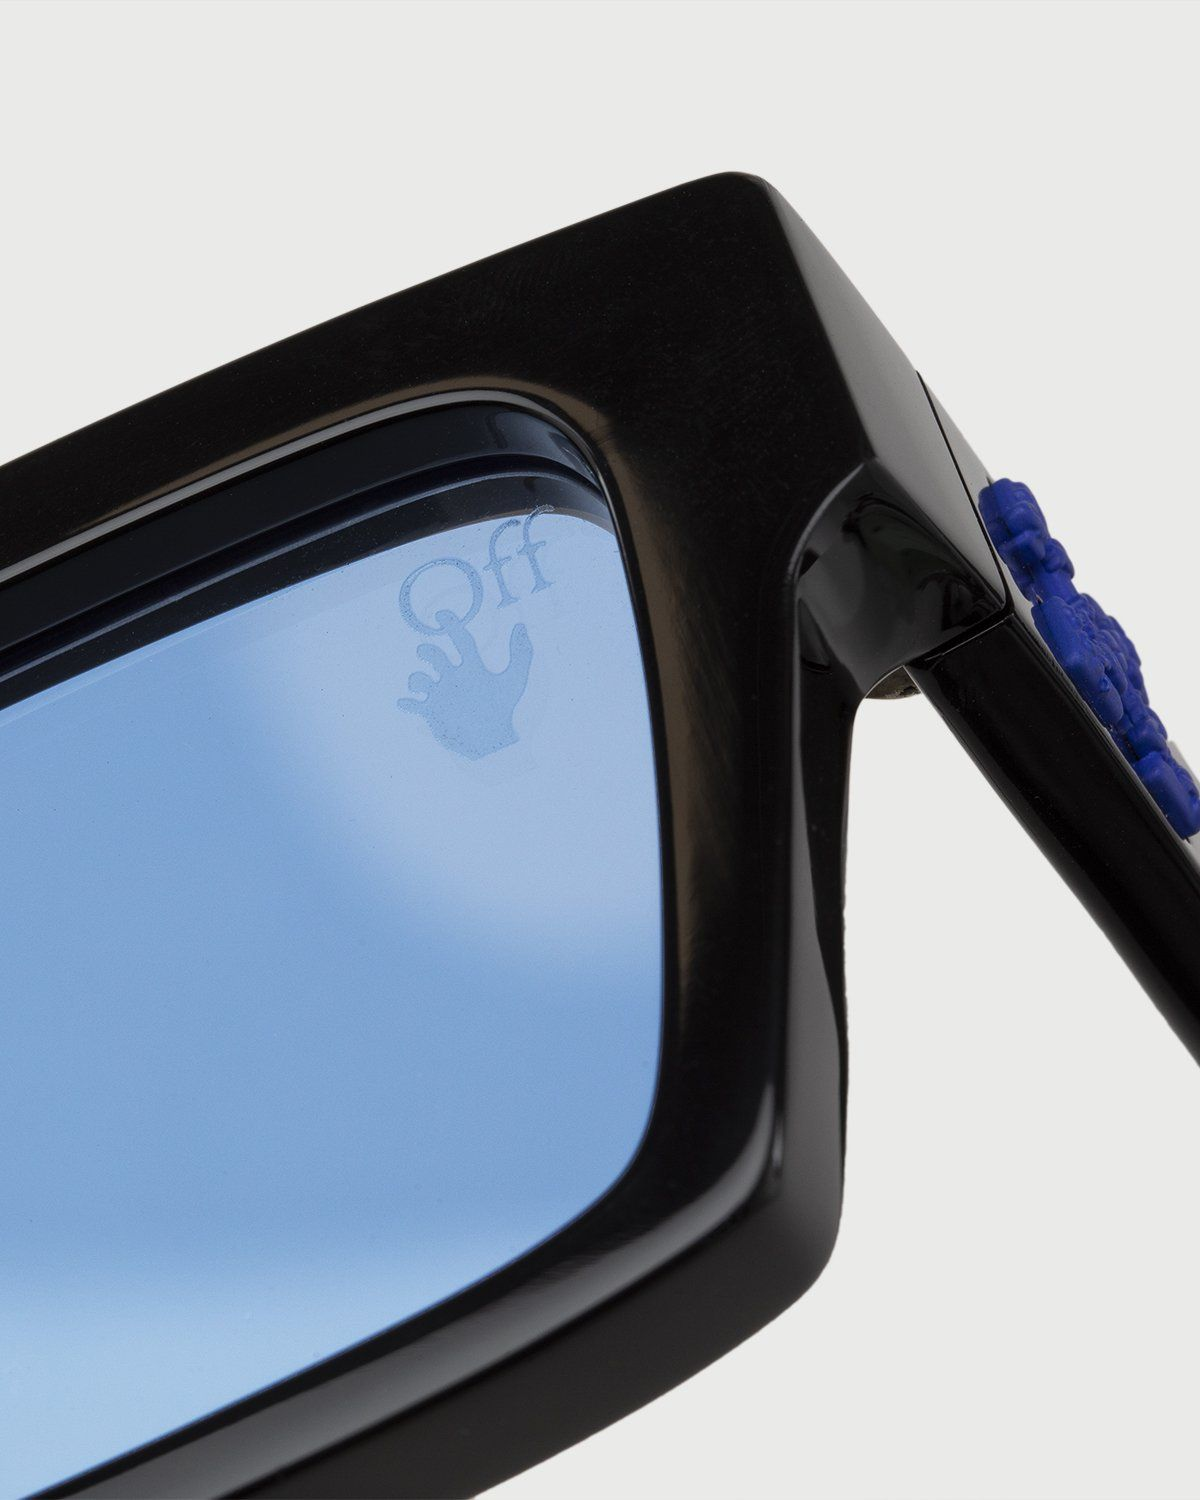 Off-White x colette Mon Amour - Sunglasses Black - Image 6